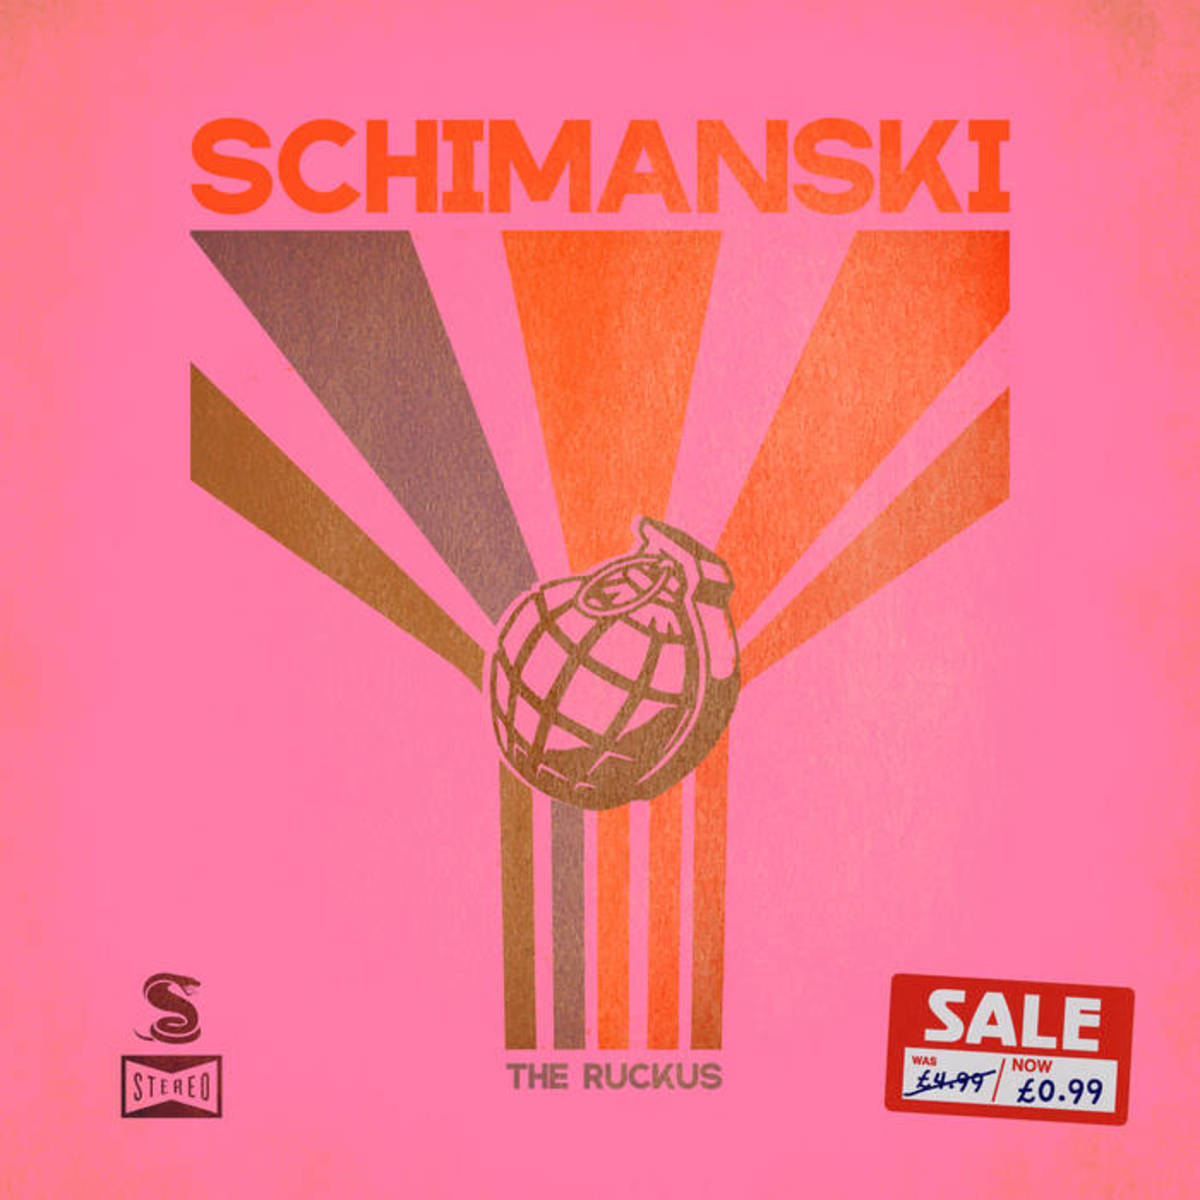 synth-single-review-the-ruckus-by-schimanski